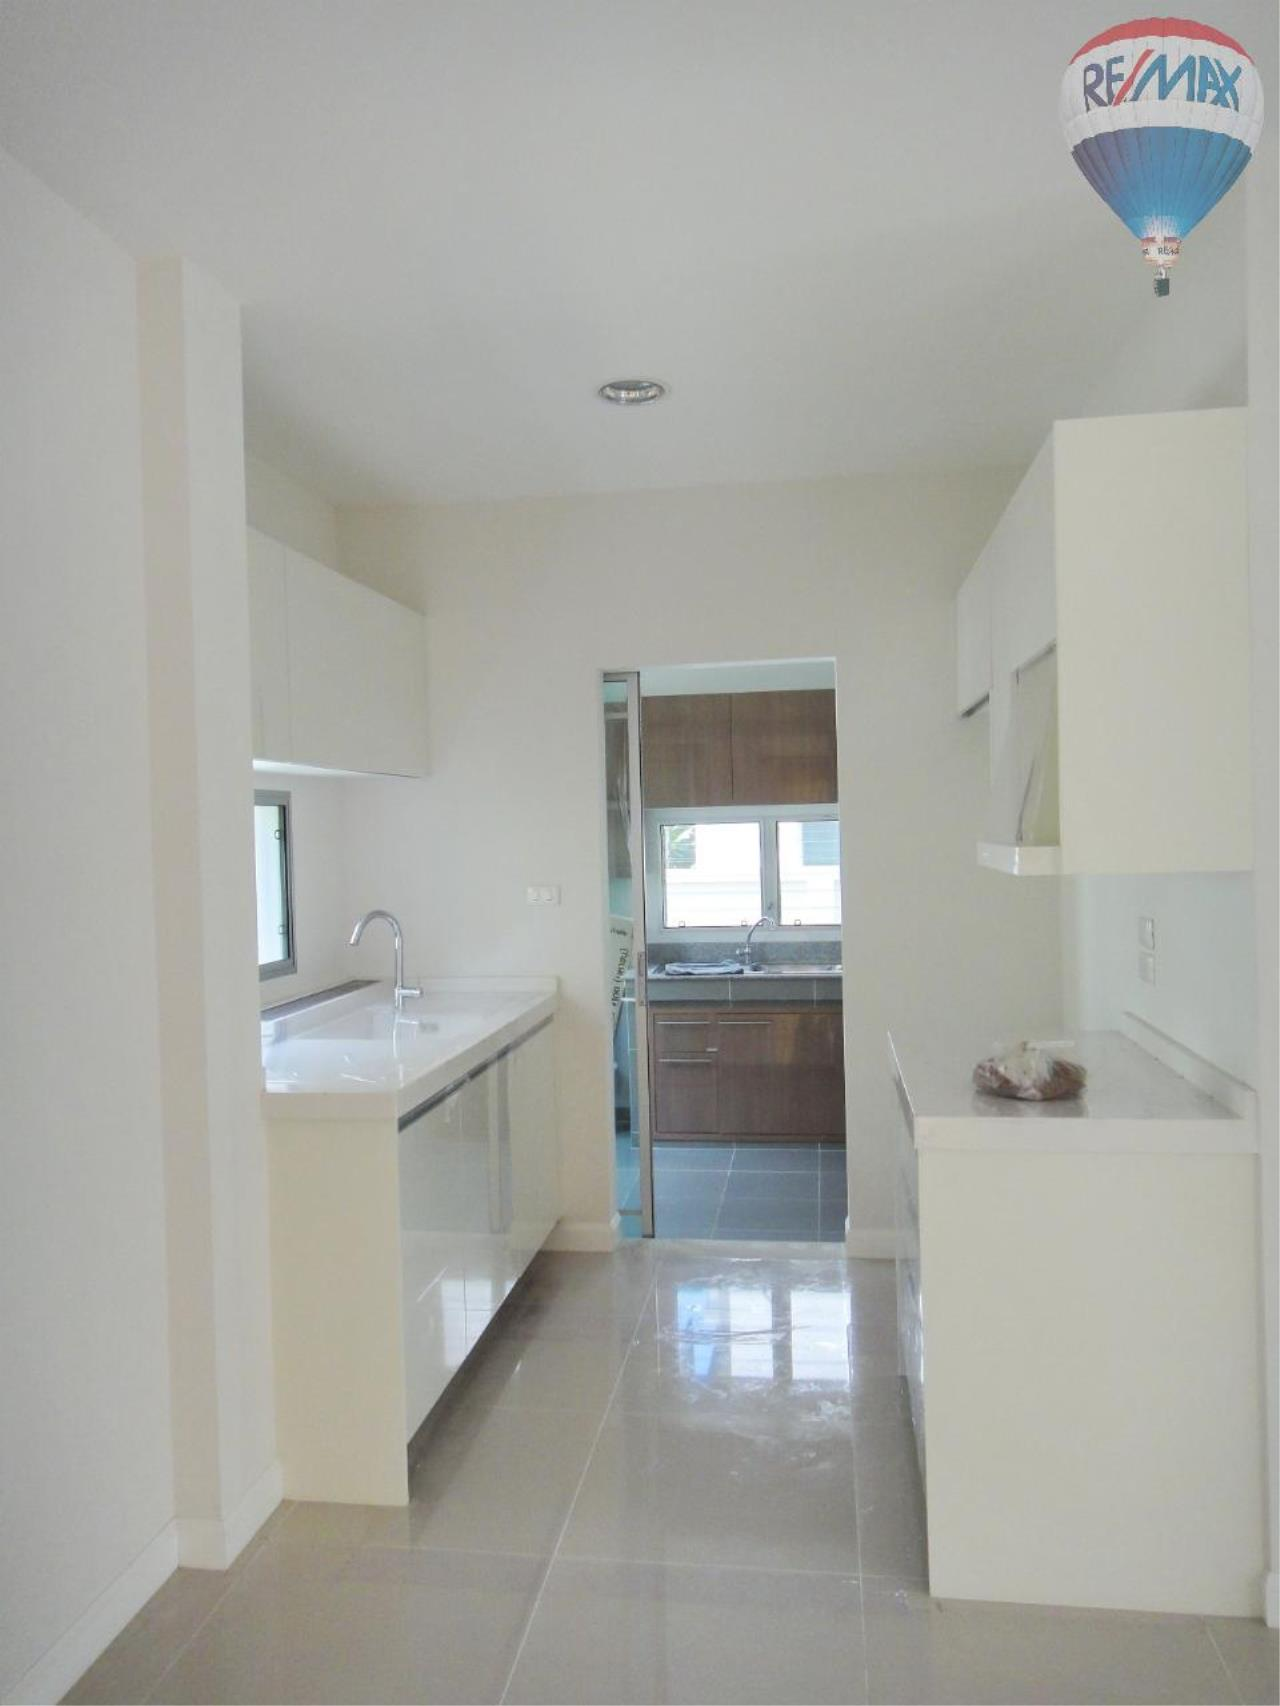 RE/MAX BestLife Agency's Nantawan Srinakarin Land and House for sale 3 bedroom 3 bathroom 64 sq.wah 168 sqm. 6